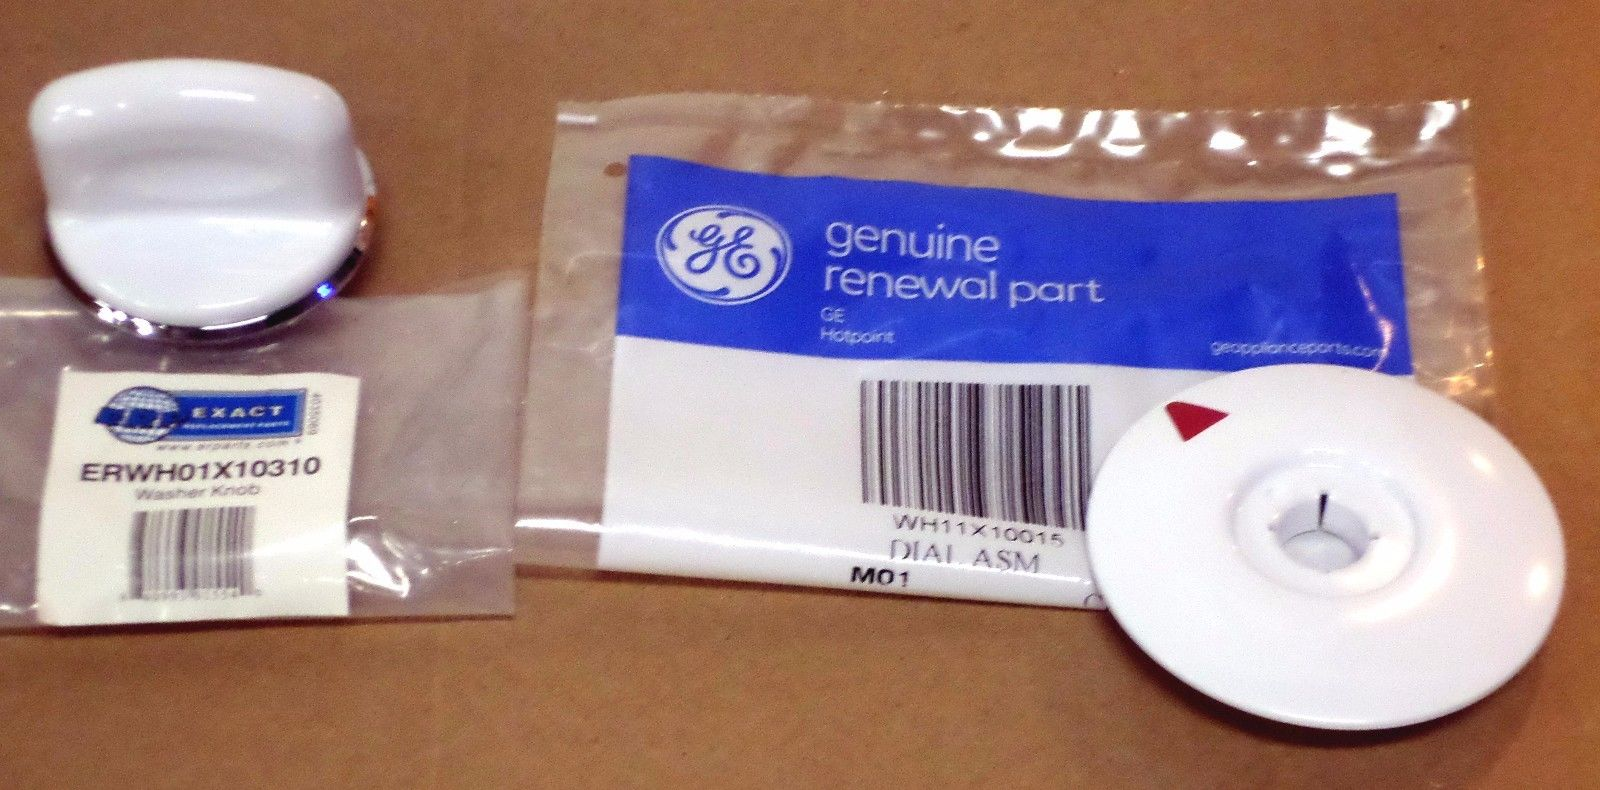 Combo Pack Ge Washer Wh01x10310 Timer Knob Amp Wh11x10015